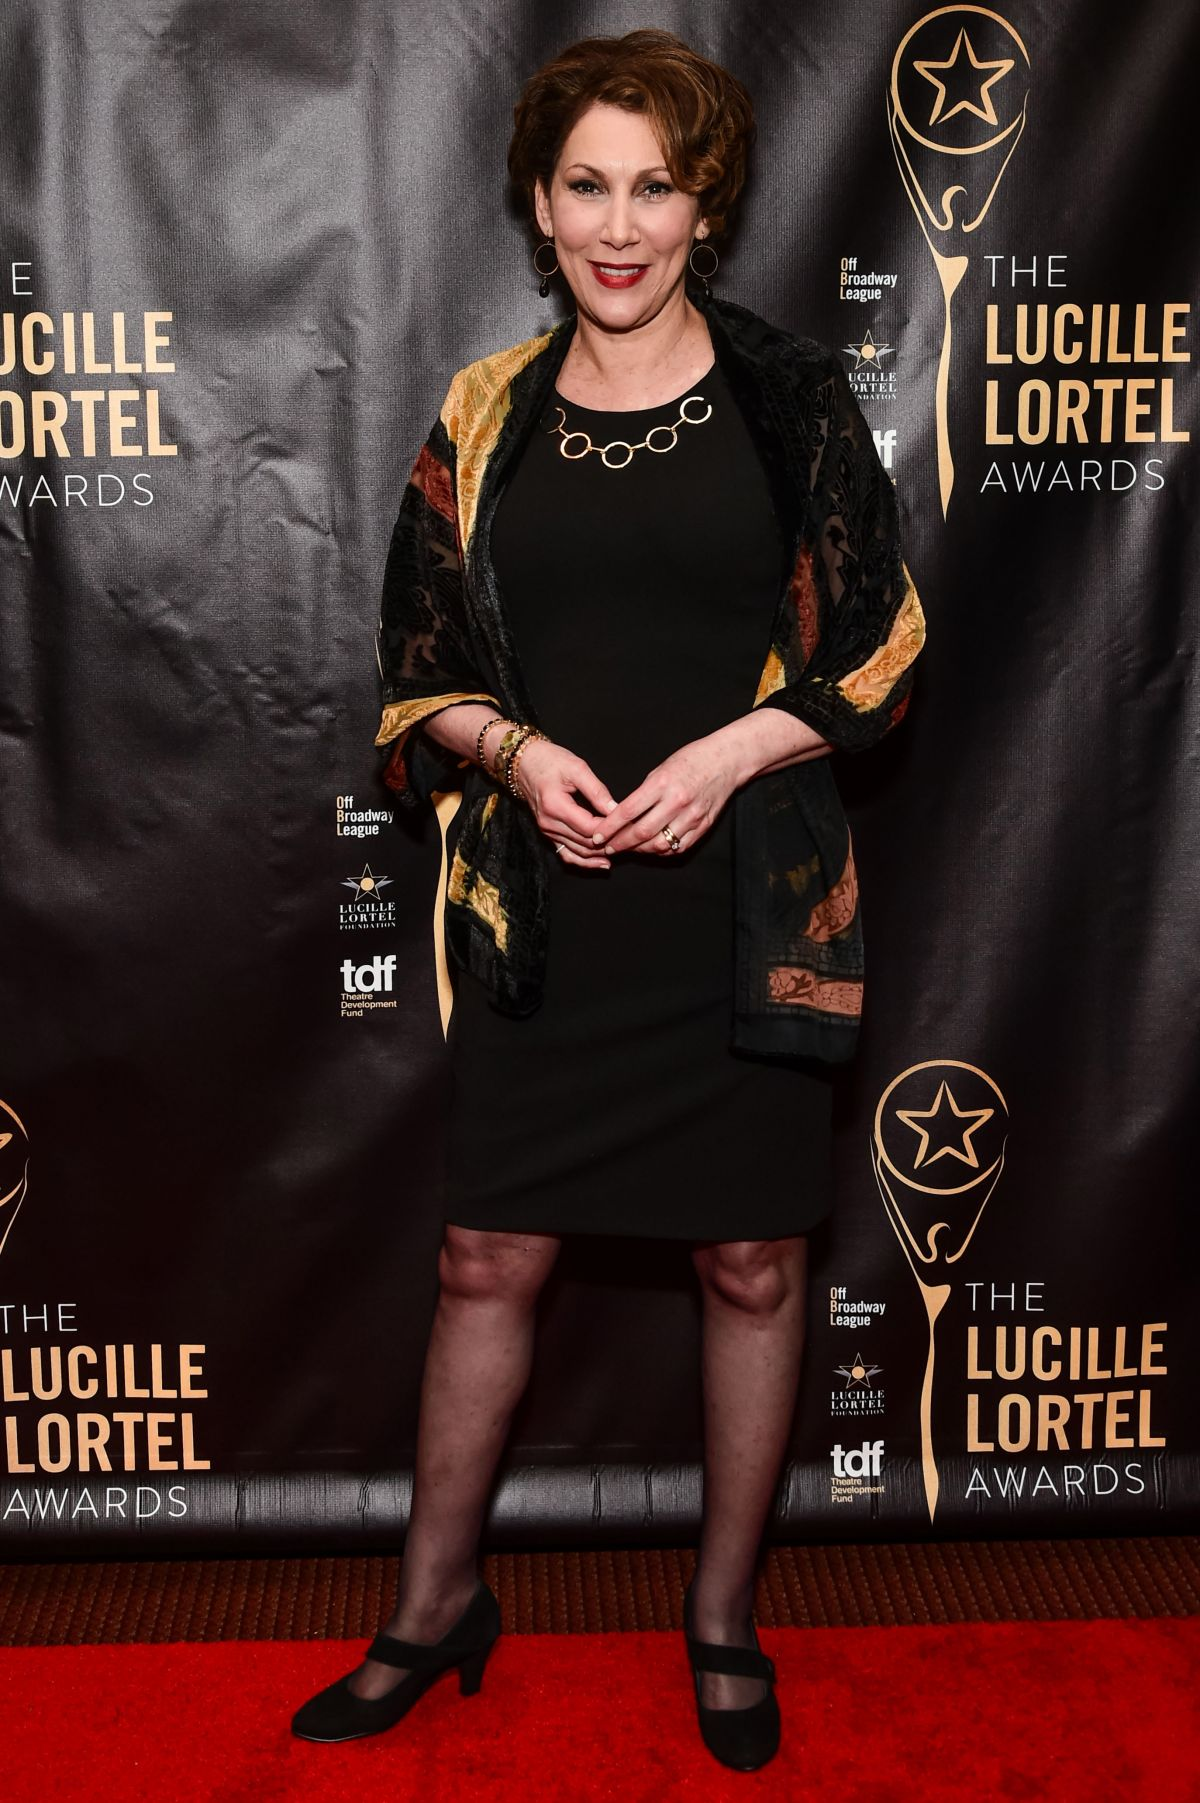 RANDY GRAFF at 32nd Annual Lucille Lortel Awards in New York 05/07/2017